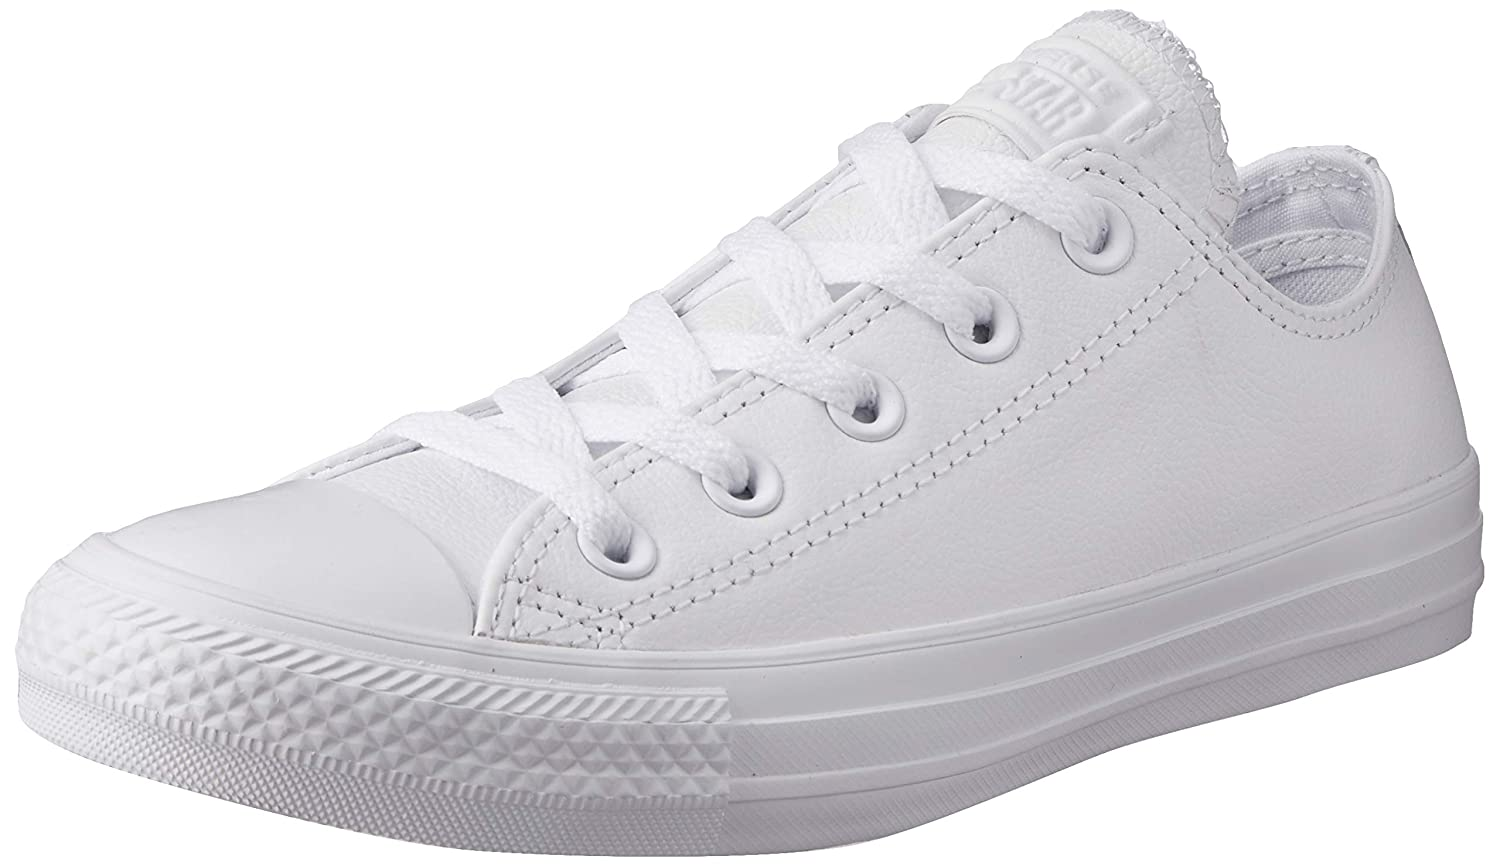 White Leather Converse Chuck Taylor All Star Leather Low Top Sneaker